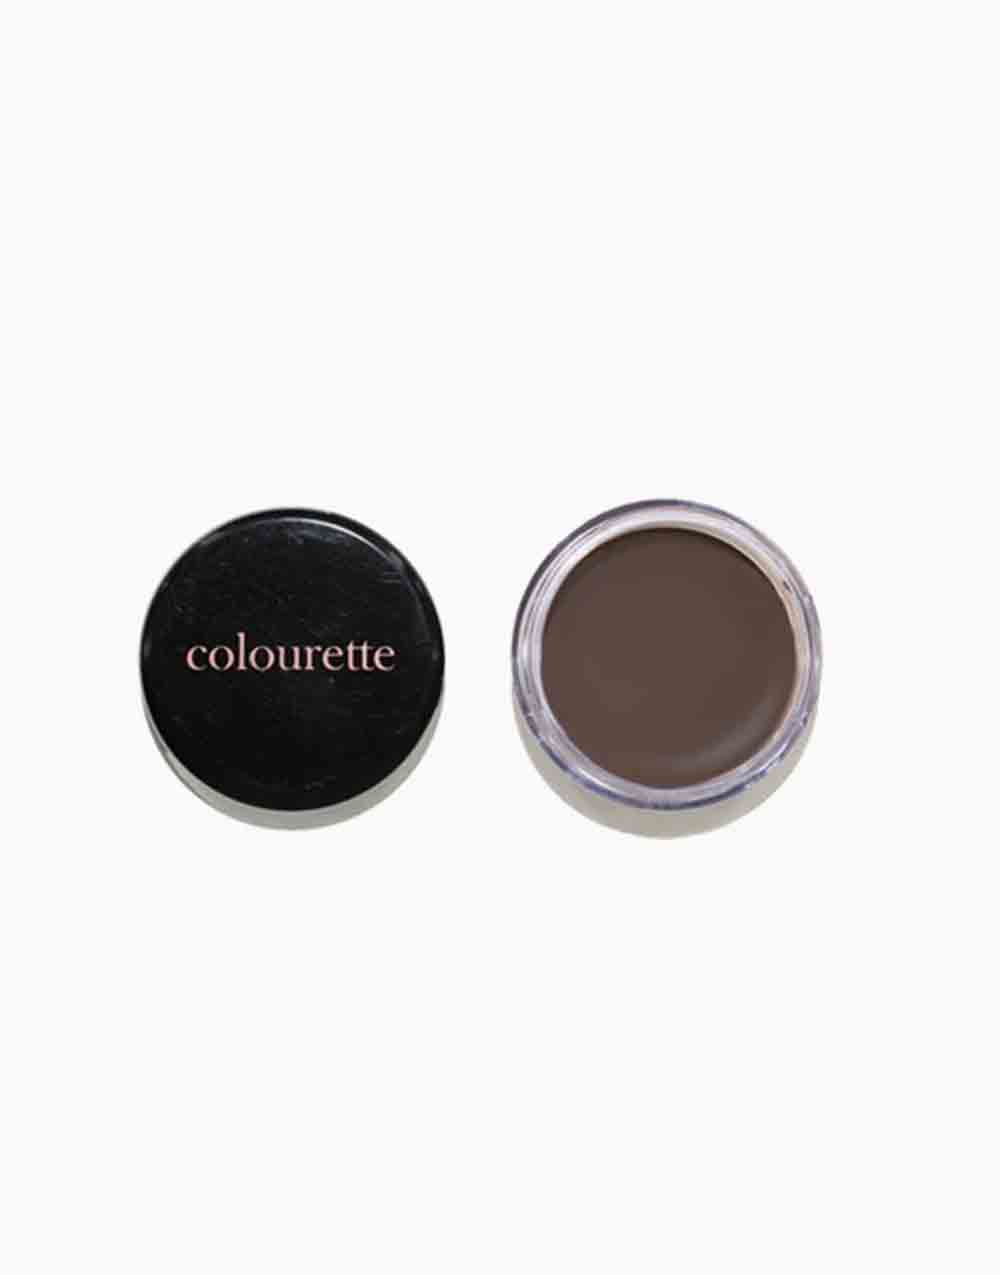 Browfessional 2-in-1 Pomade by Colourette | Espresso